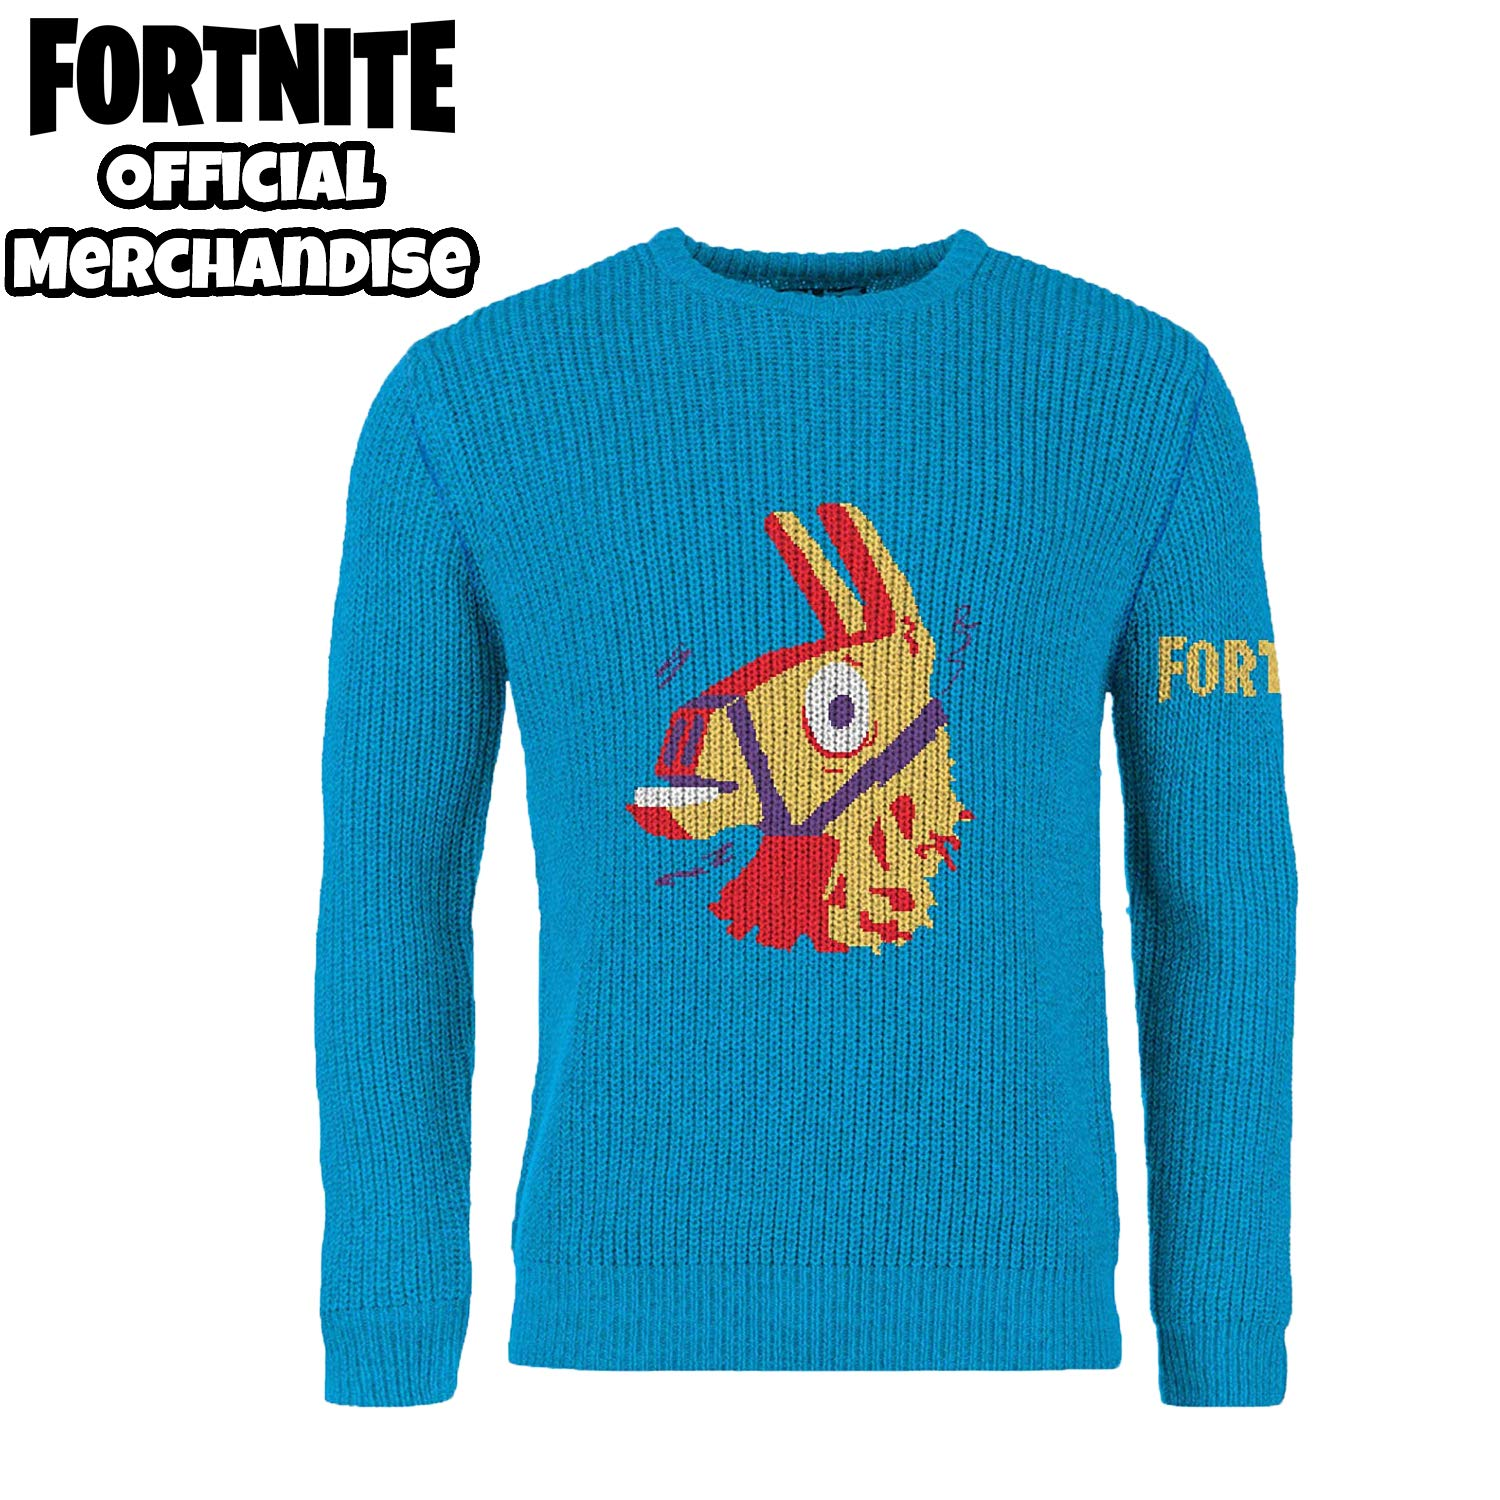 0481e4a5d61 Fortnite Gifts Jumper for Boys Men Official Merchandise Hoodies for Kids  and Adults Gaming  Amazon.co.uk  Clothing